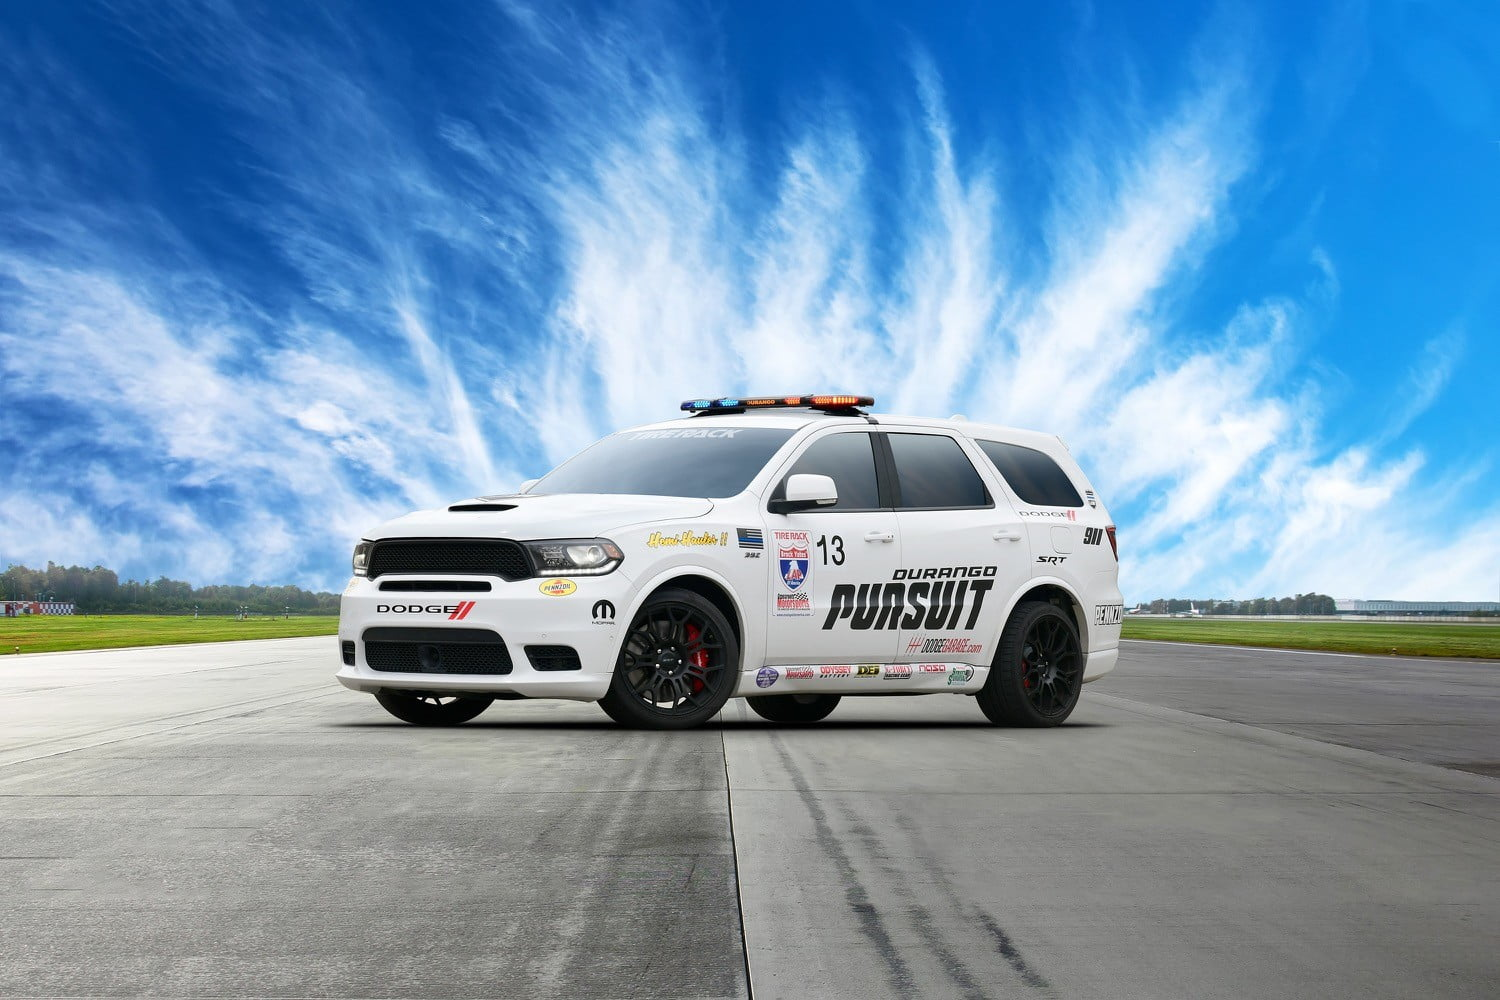 Dodge Built A Hellcat Powered Durango Pursuit For One Lap Of America Digital Trends